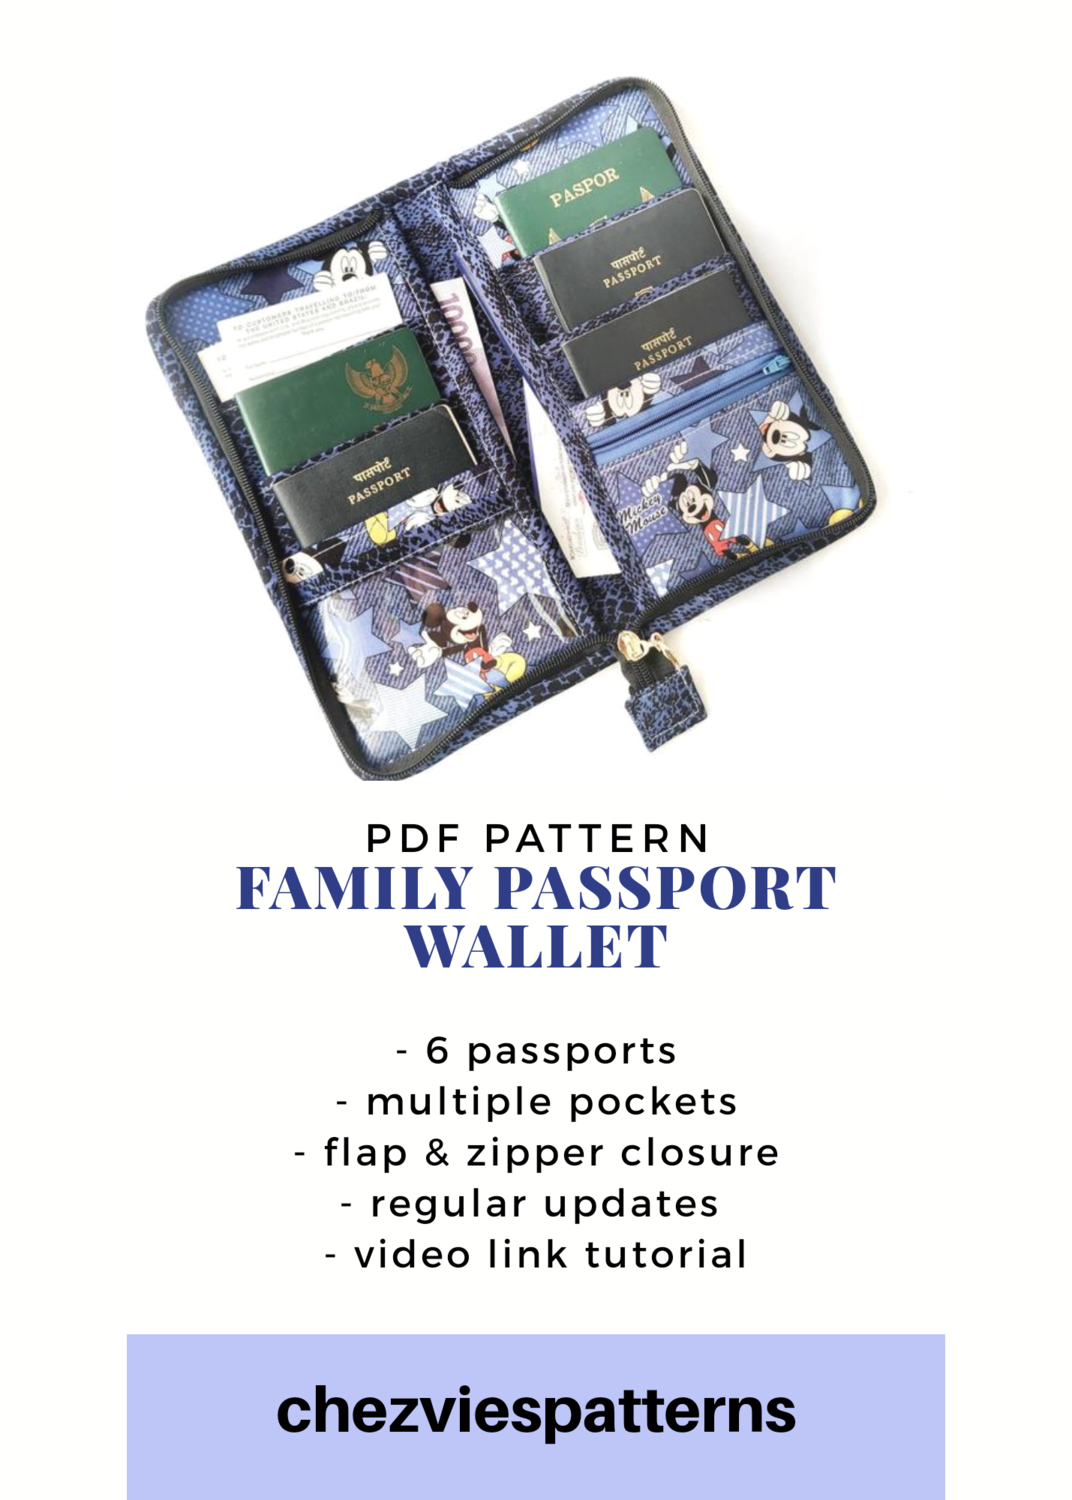 PdF Sewing Pattern- Family Passport Wallet